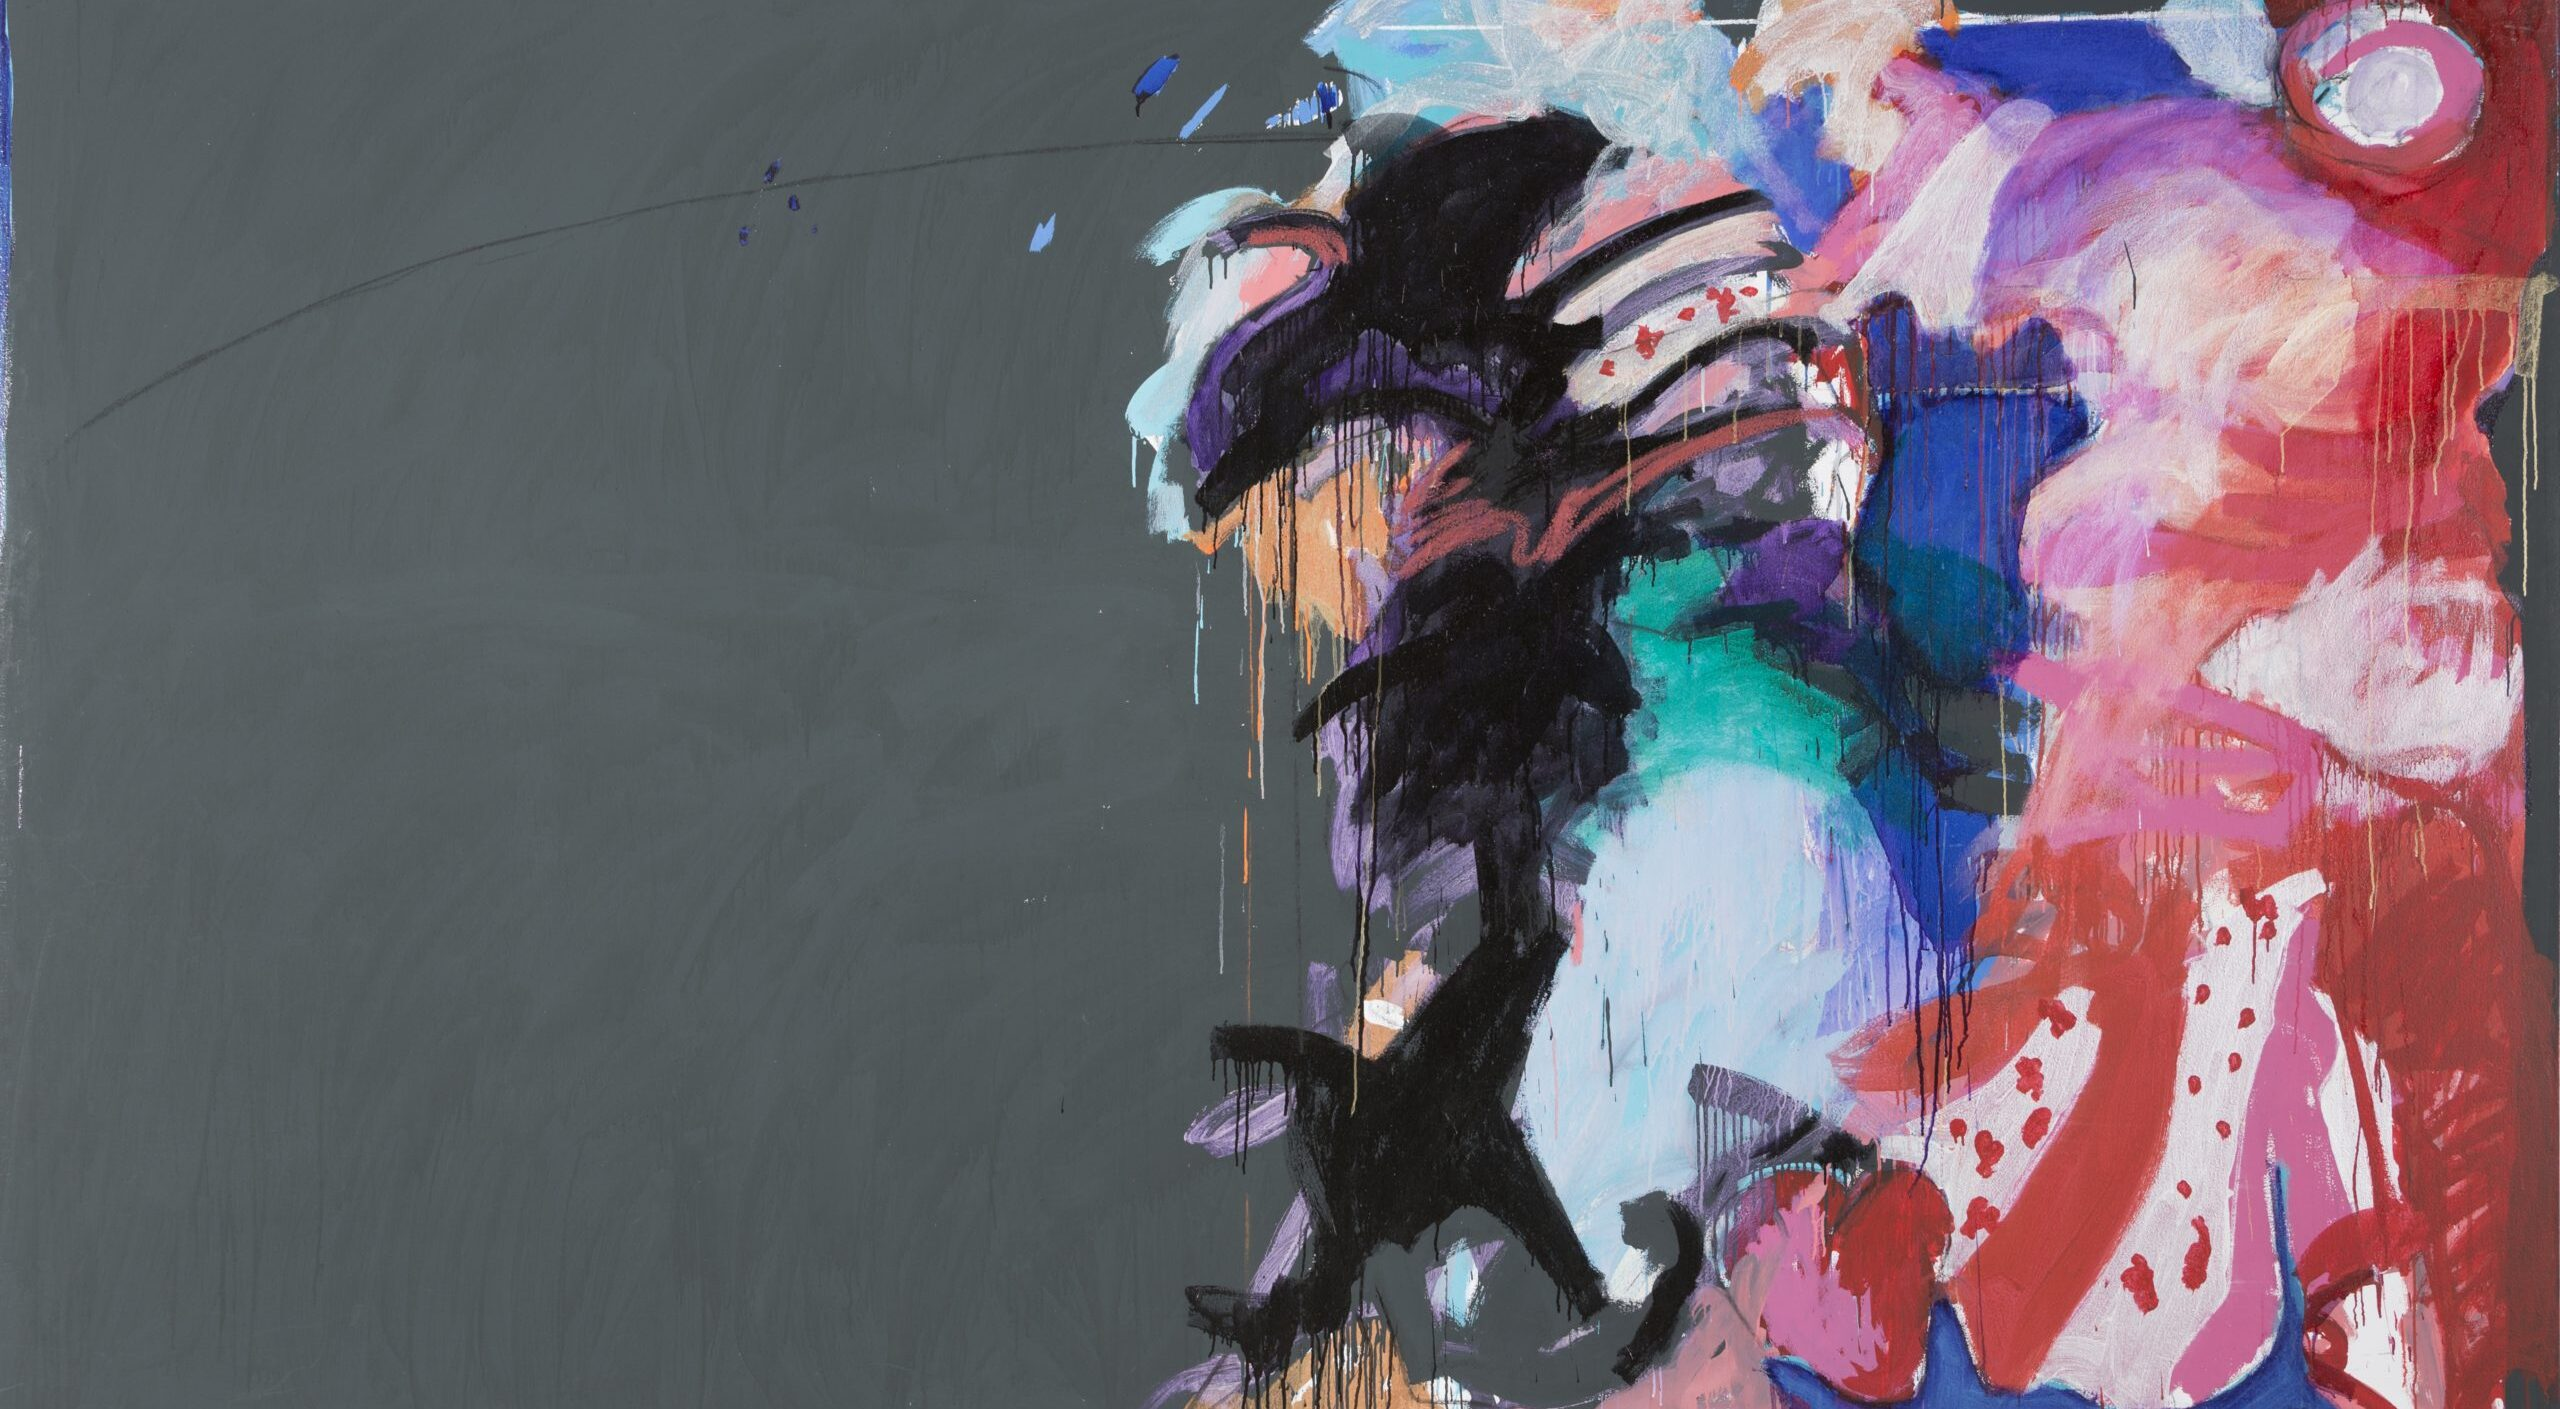 Large abstract work shows half the painting with solid dark gray paint on the right and swirling paint in pinks, blues, black, and purples on the right.